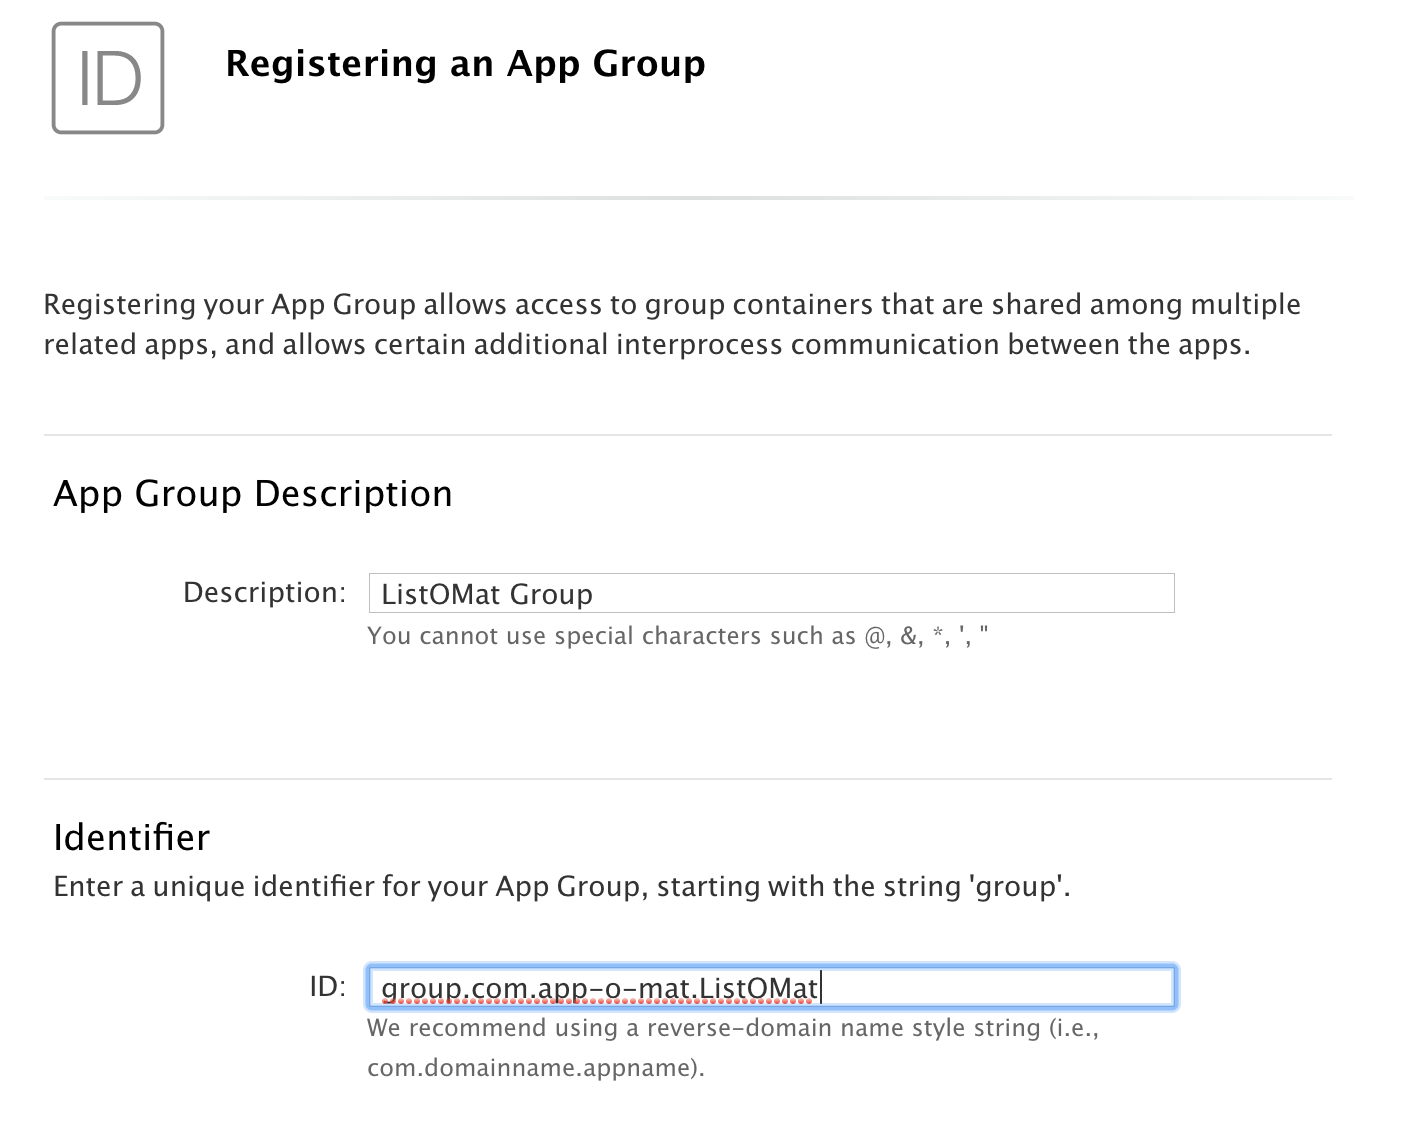 A screenshot of the Apple developer website dialog for registering an app group